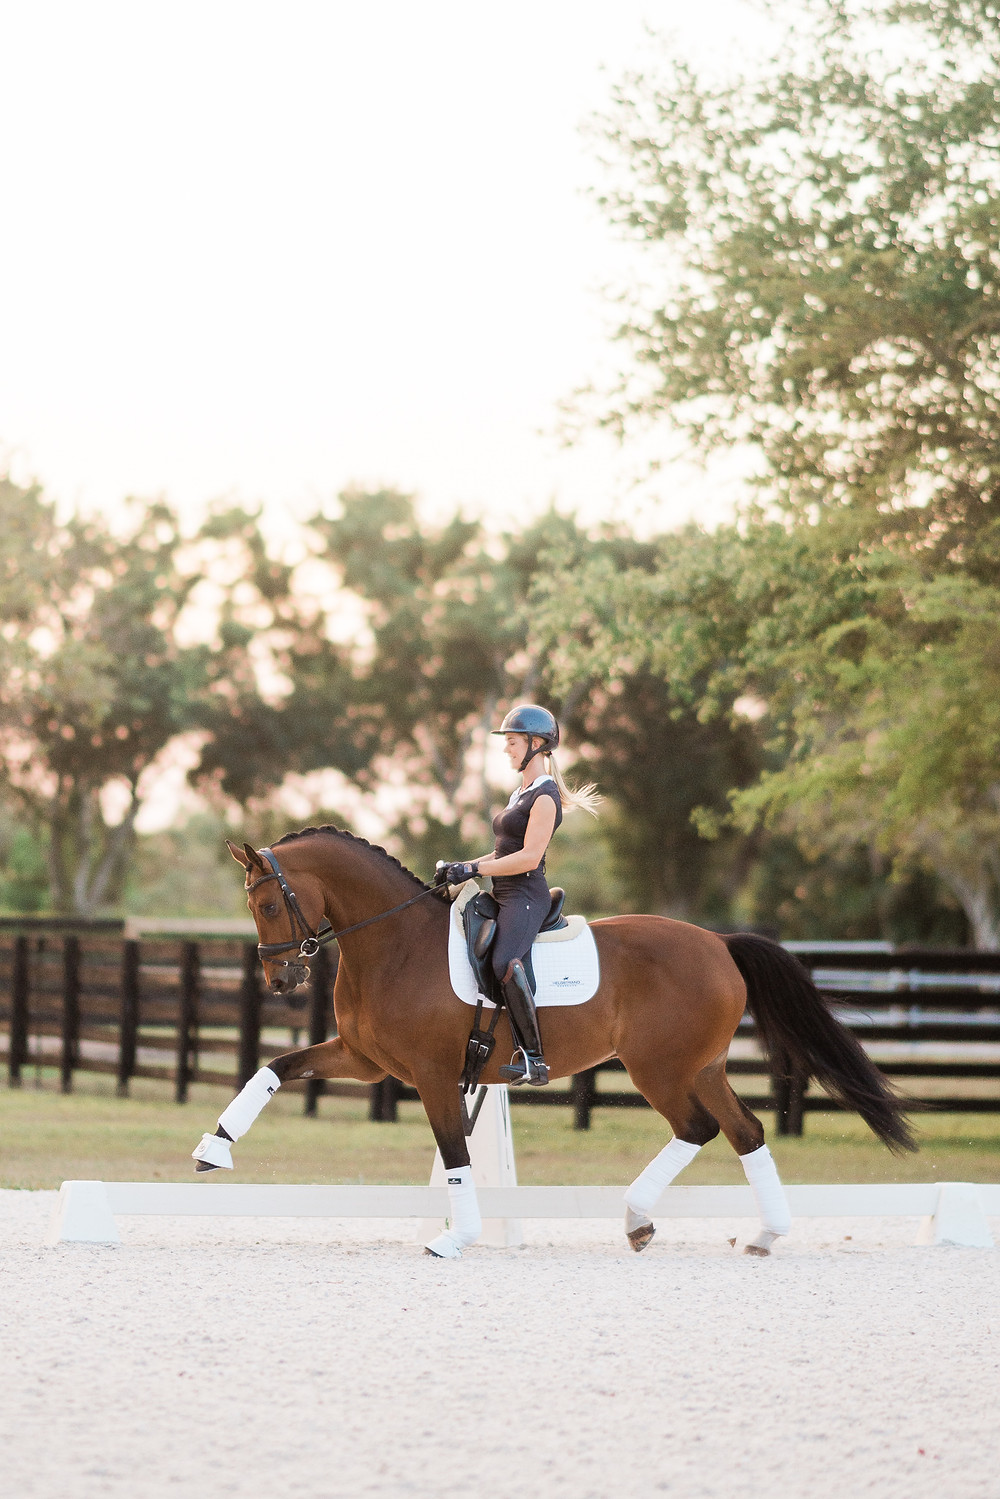 Amanda trotting Backstage in the outdoor arena at sunset in Wellington, FL